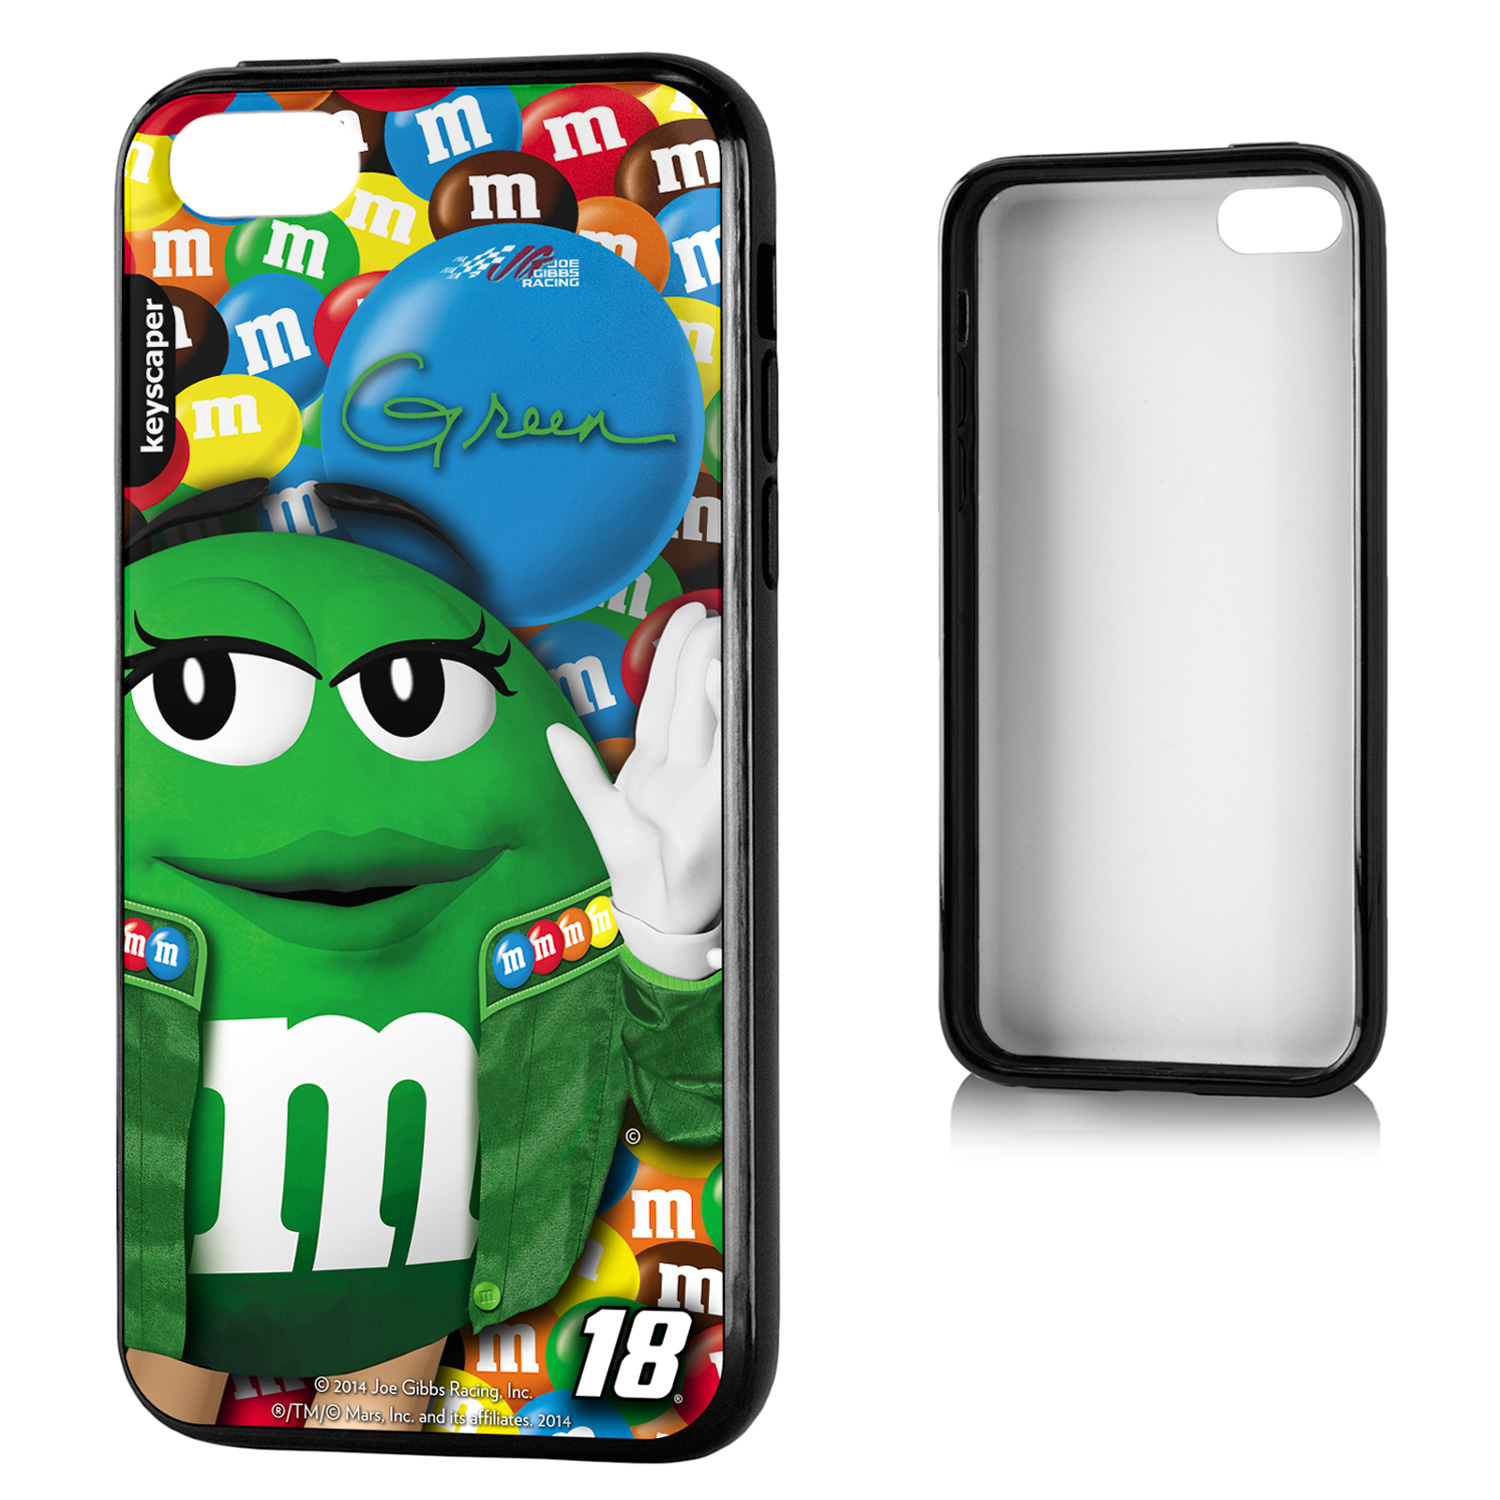 Kyle Busch iPhone 5C Bumper Case NASCAR